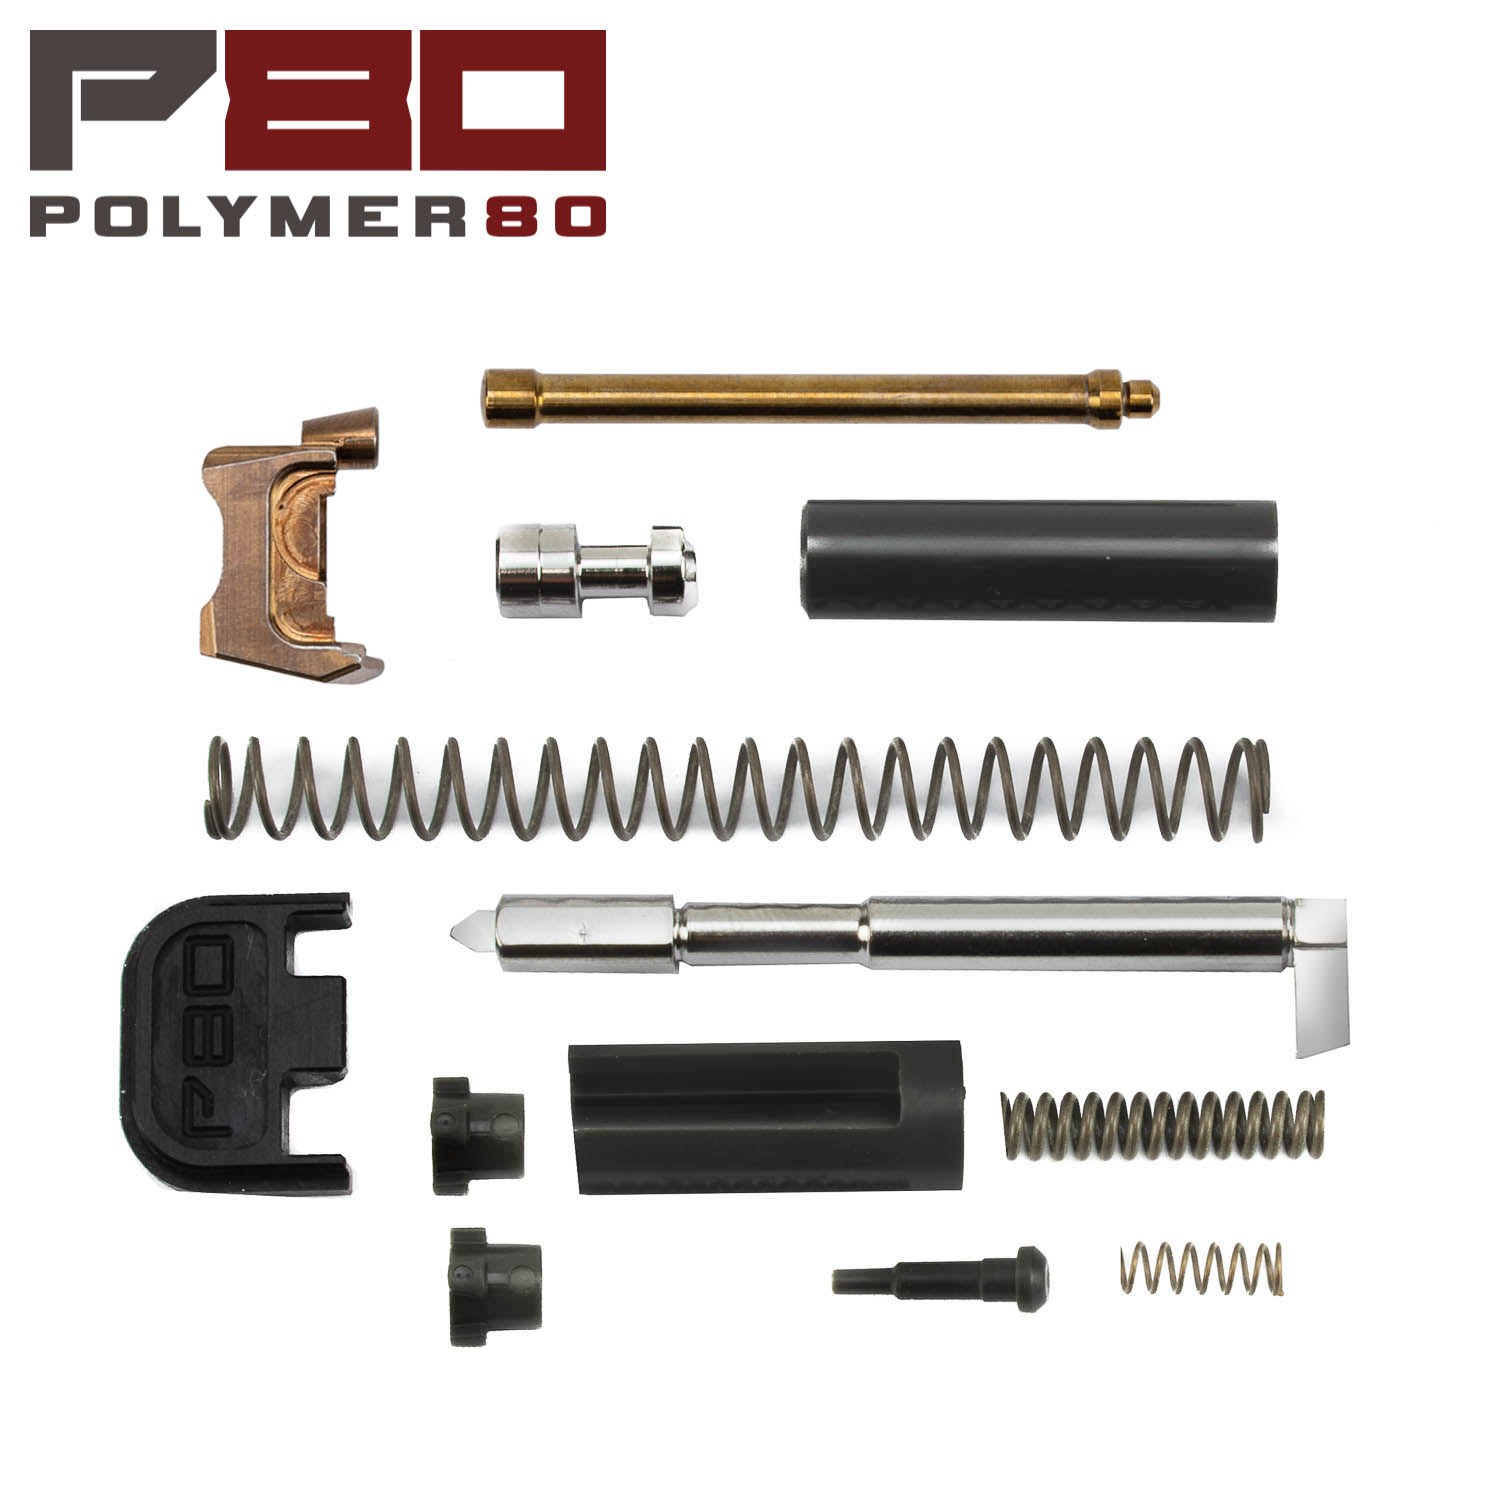 Polymer80 Glock Gen1-4 9mm Slide Parts Kit, Bronze/Gray: Midwest Gun Works